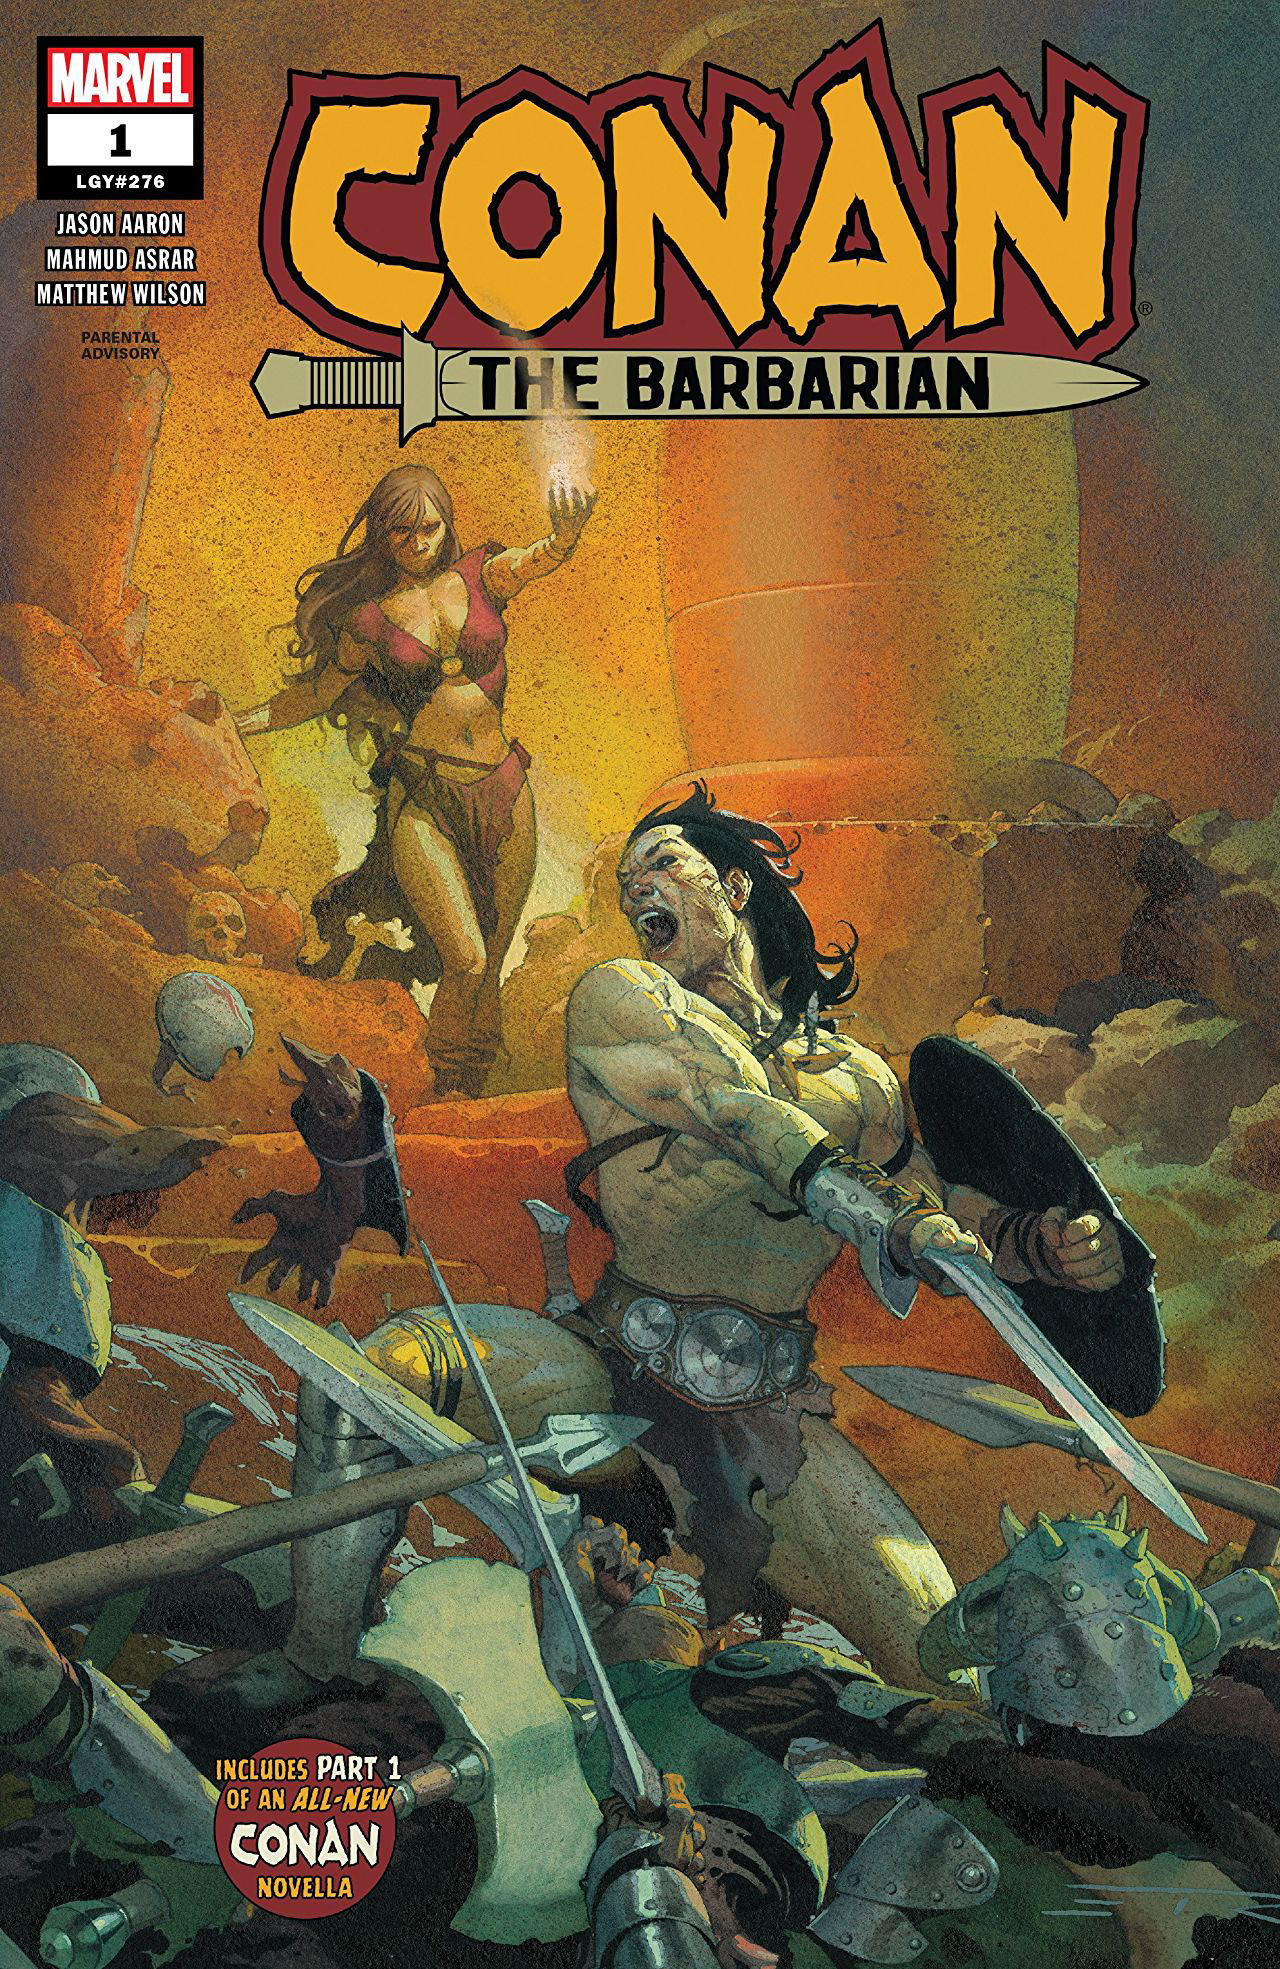 Conan the Barbarian #1  was released 1/2/2019.